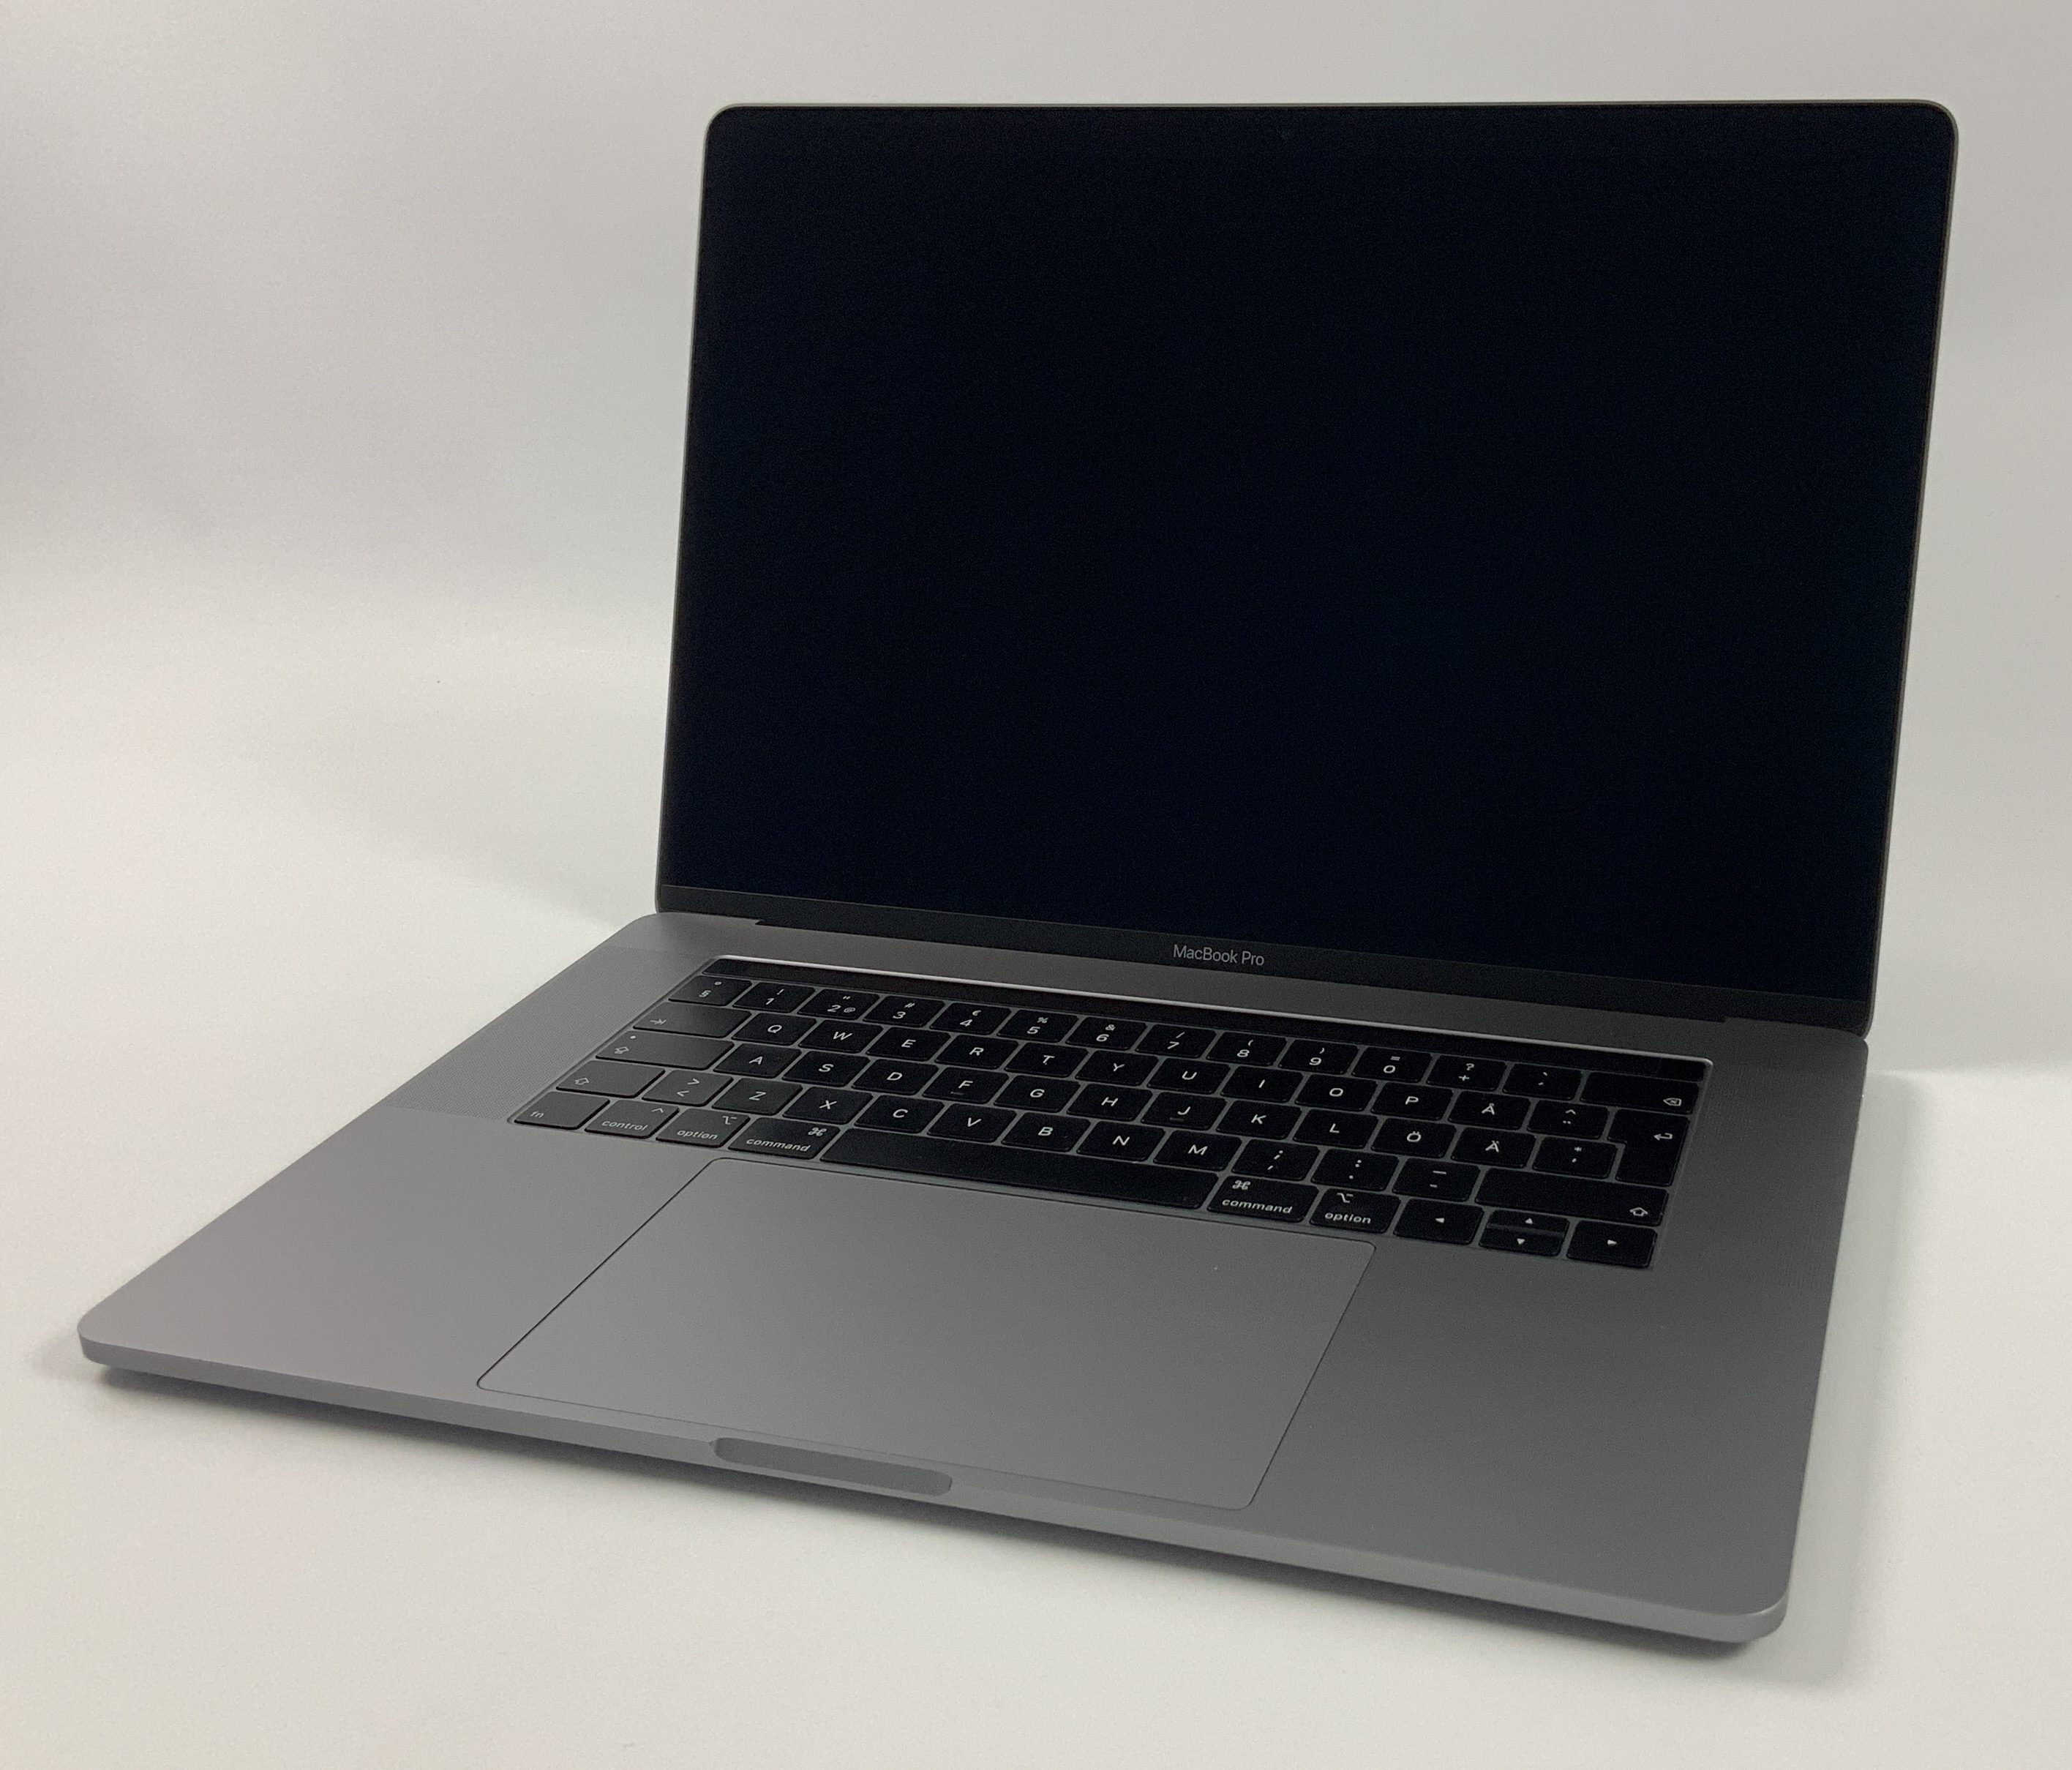 "MacBook Pro 15"" Touch Bar Mid 2018 (Intel 6-Core i7 2.6 GHz 16 GB RAM 512 GB SSD), Space Gray, Intel 6-Core i7 2.6 GHz, 16 GB RAM, 512 GB SSD, Bild 1"